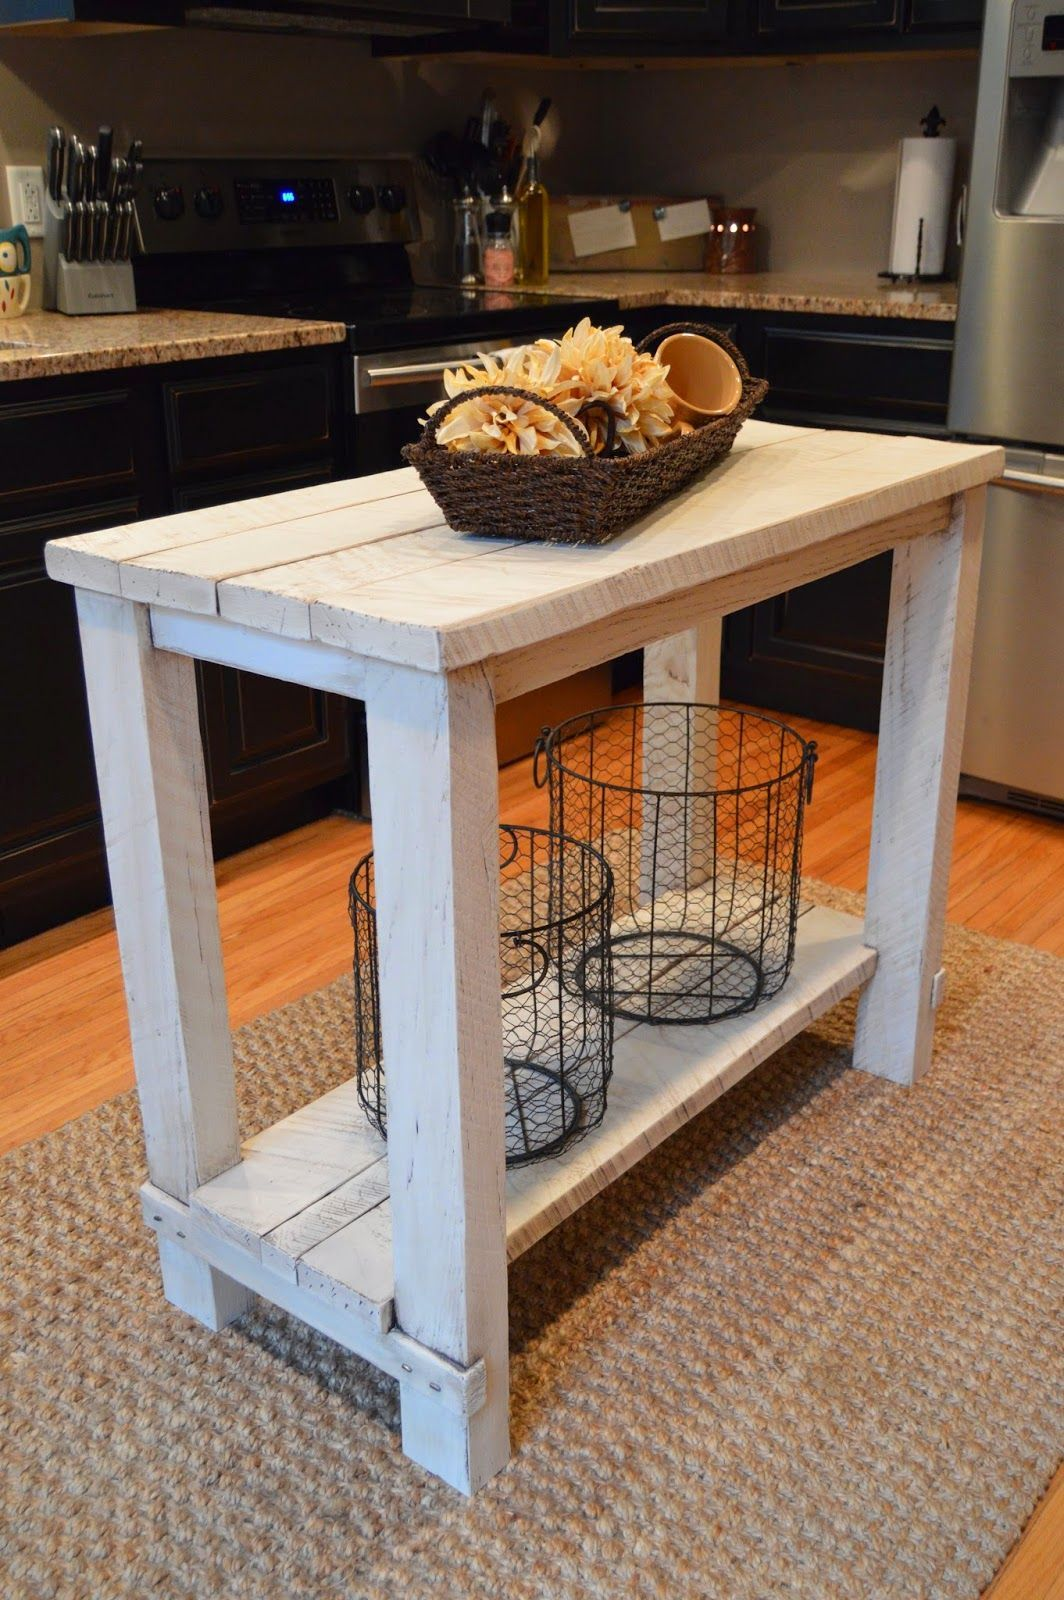 20 DIY Kitchen Island Ideas That Can Transform Your Home #islandkitchenideas